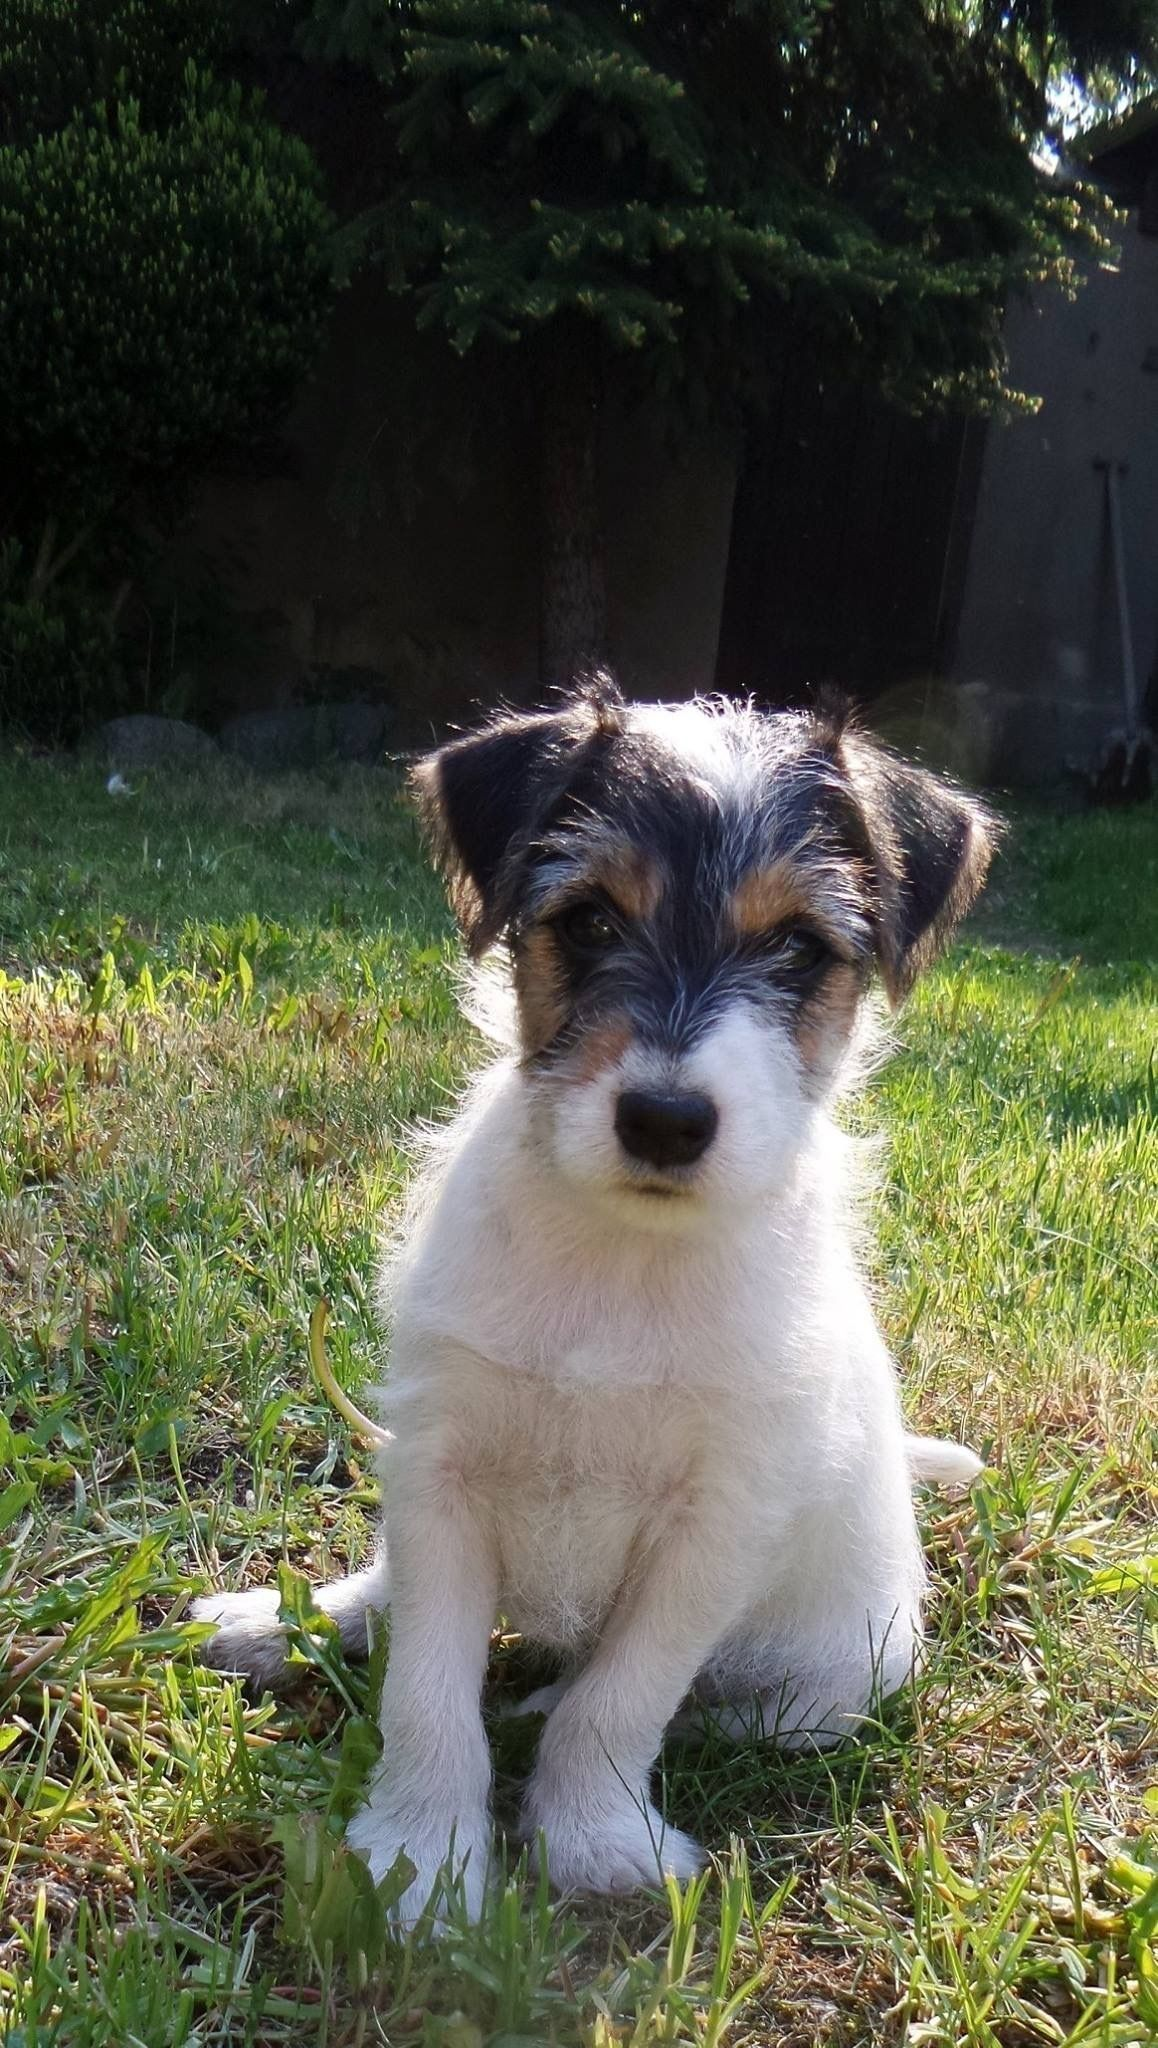 Pin by Thea H. on Cute Cute dogs, Parsons terrier, Terrier